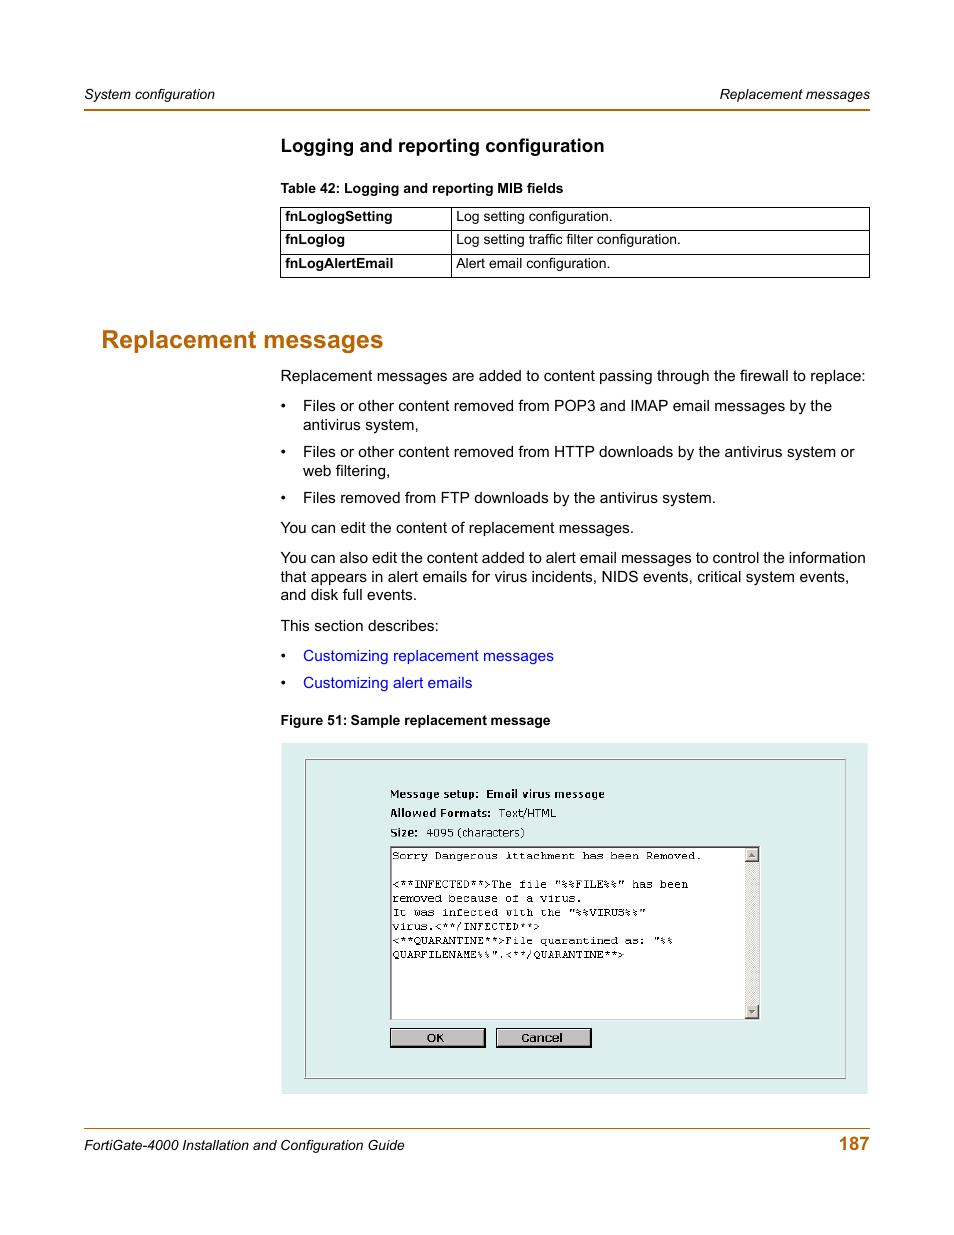 Logging and reporting configuration, Replacement messages